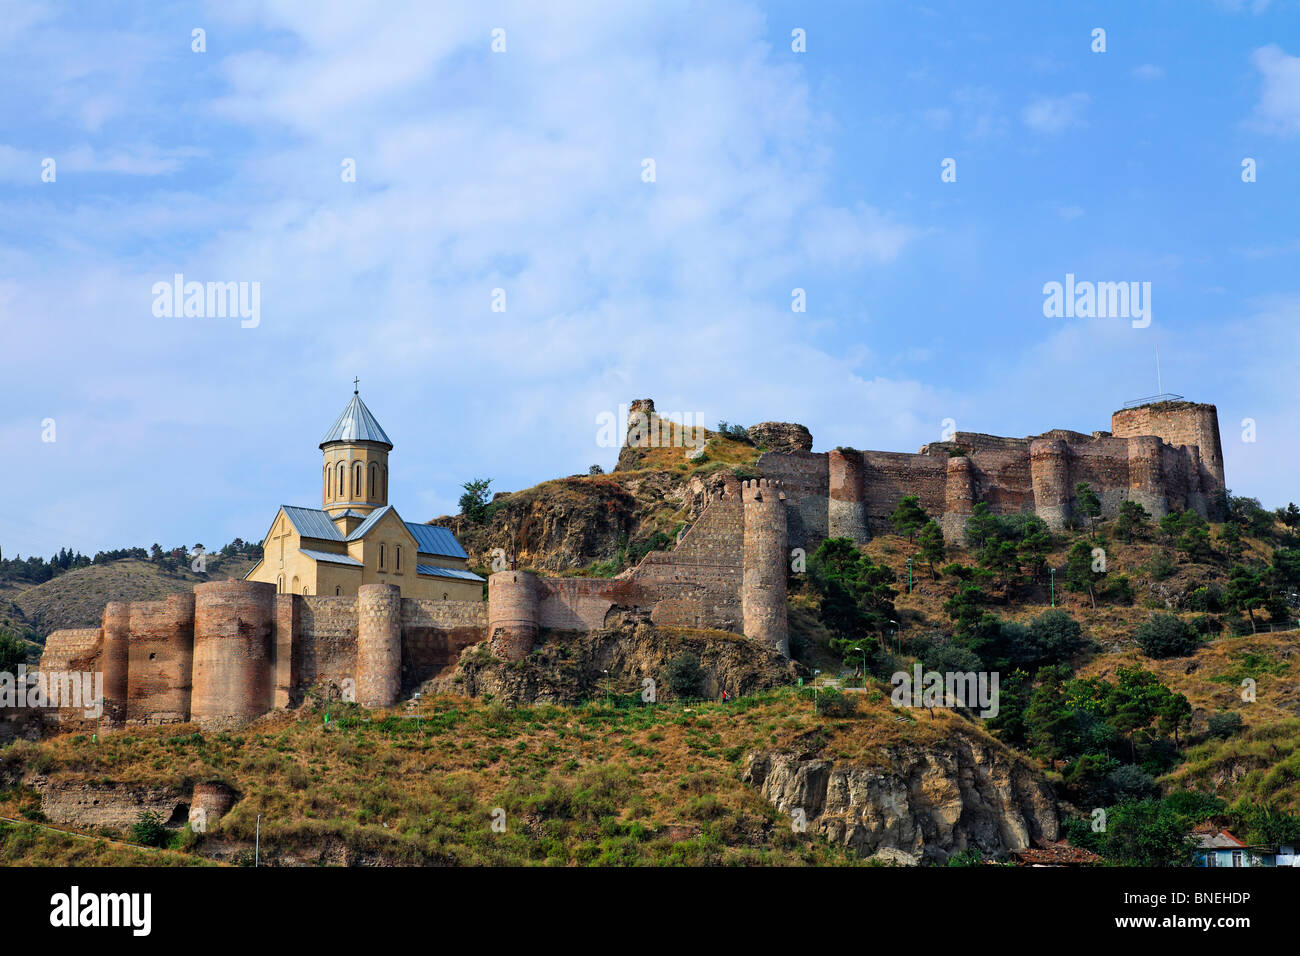 Narikala Fortress and the church of St Nicholas, Tbilisi, Georgia Stock Photo